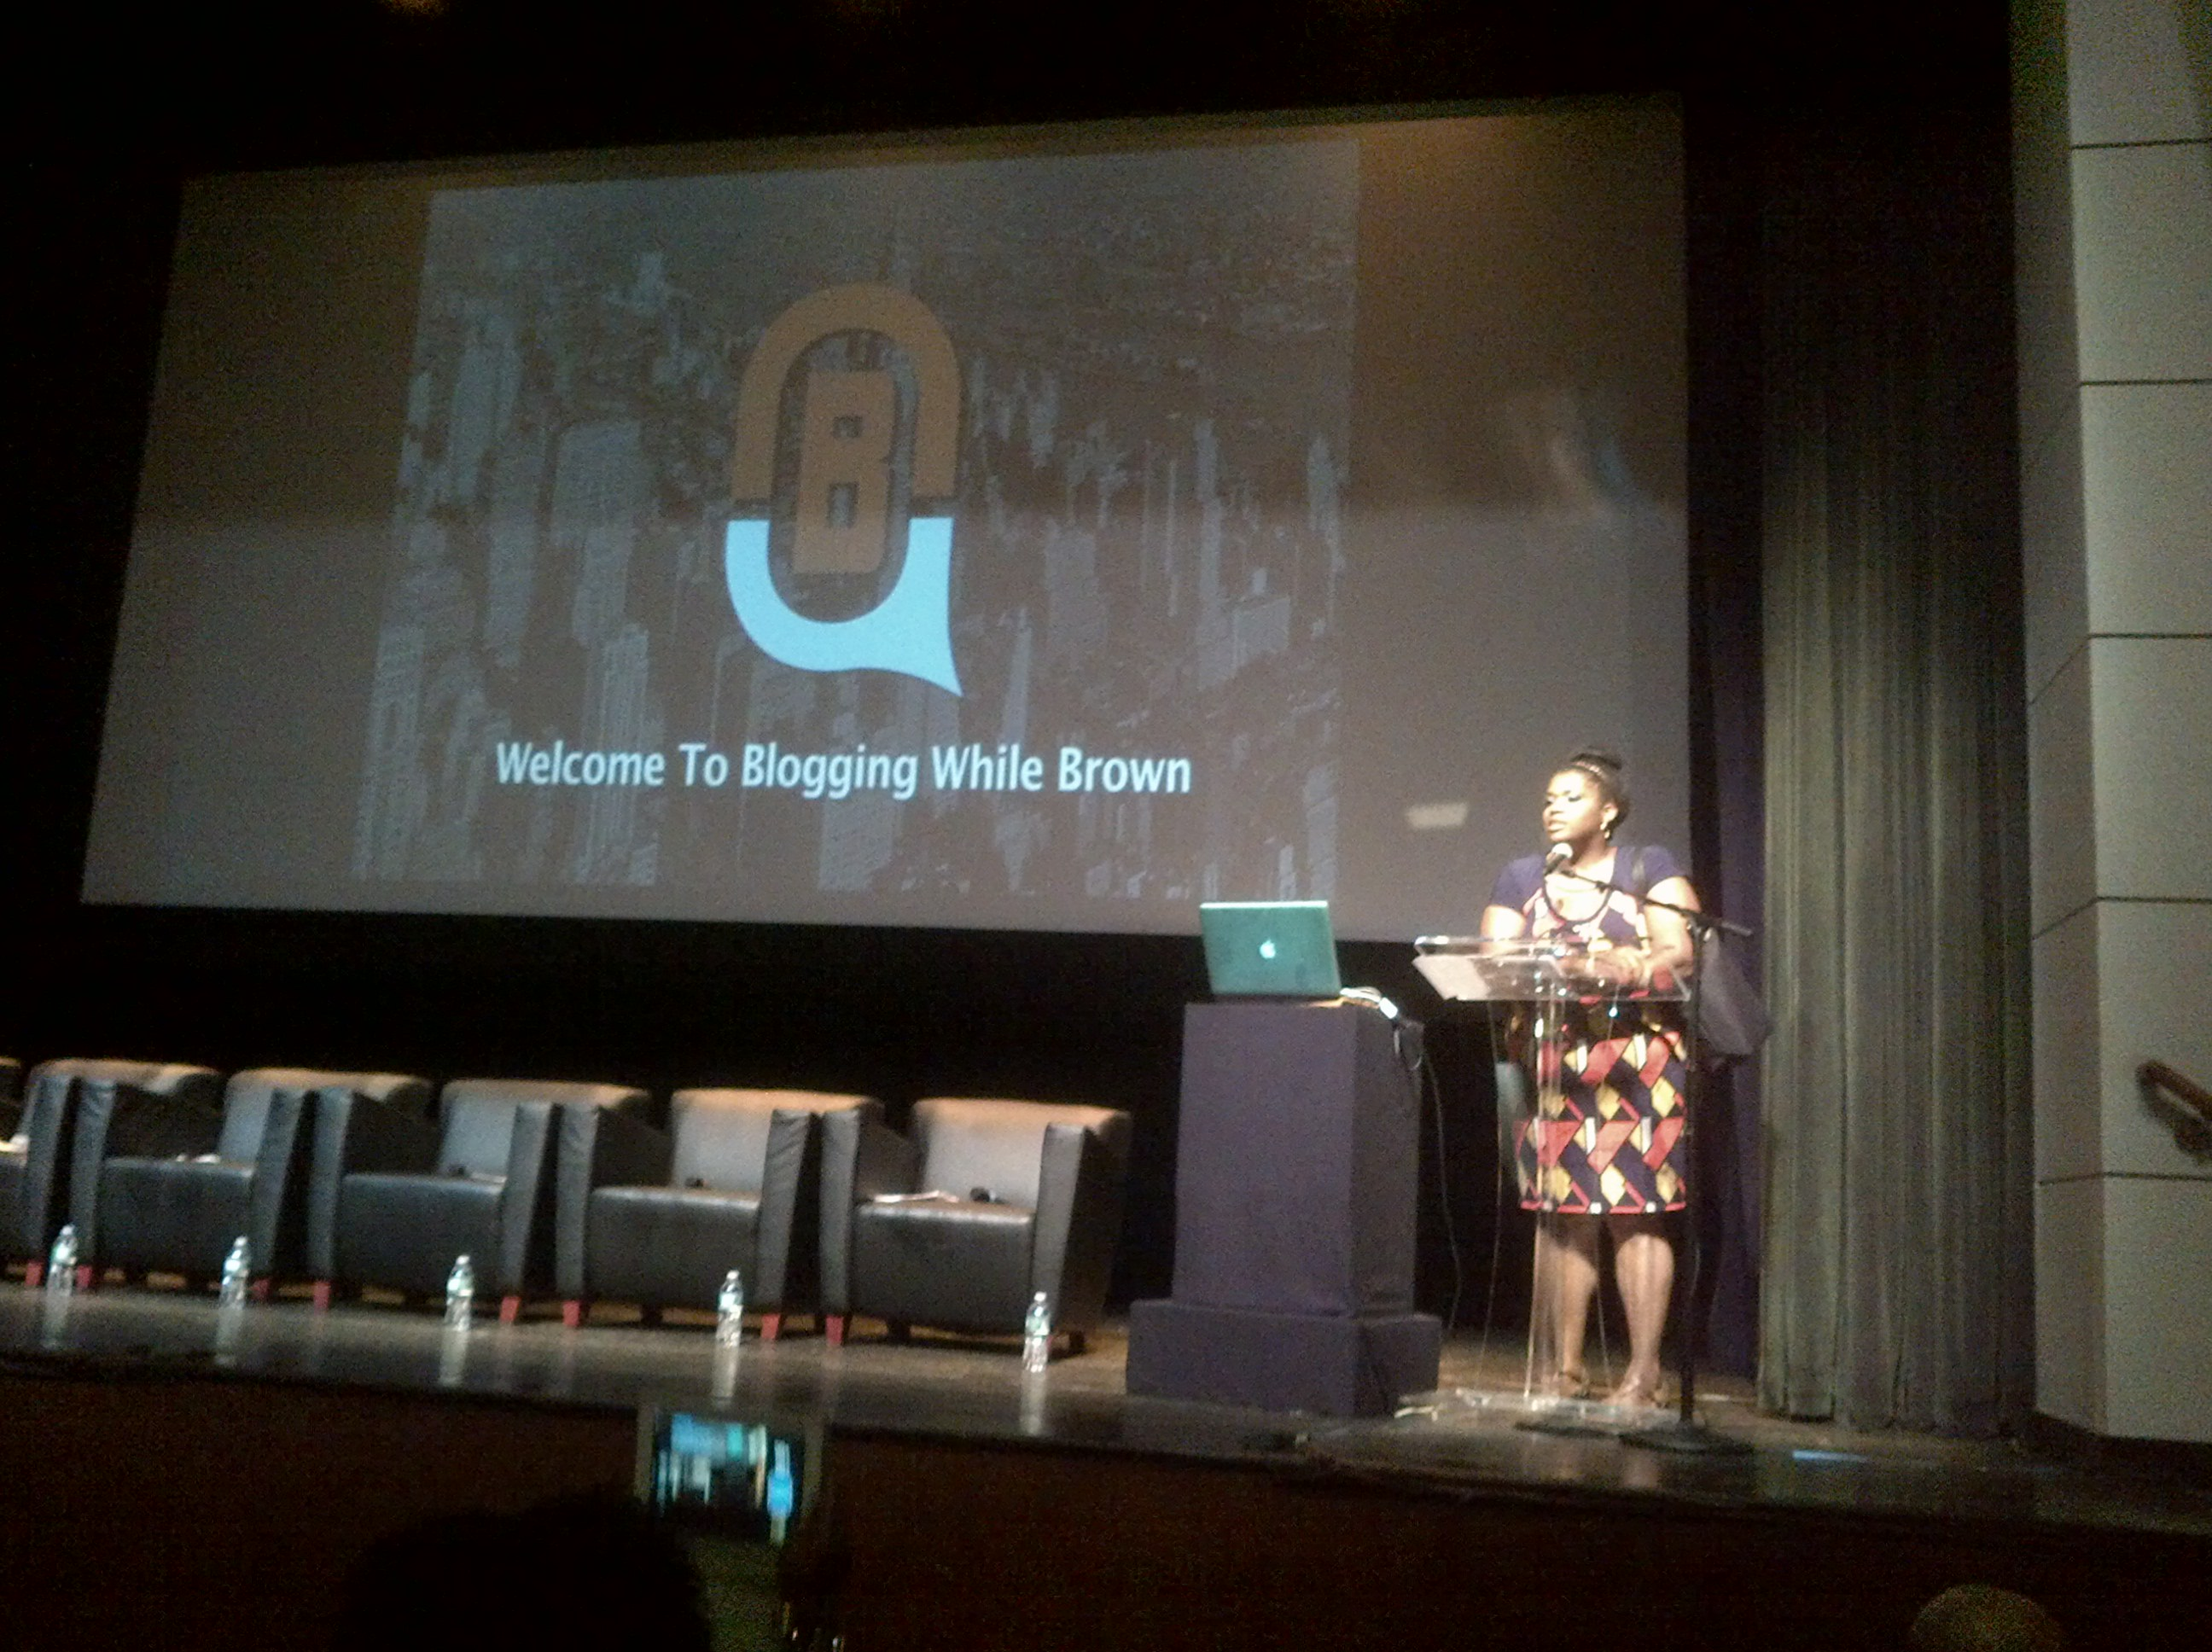 Gina McCauley, Blogging While Brown founder gives opening remarks at BWB '14